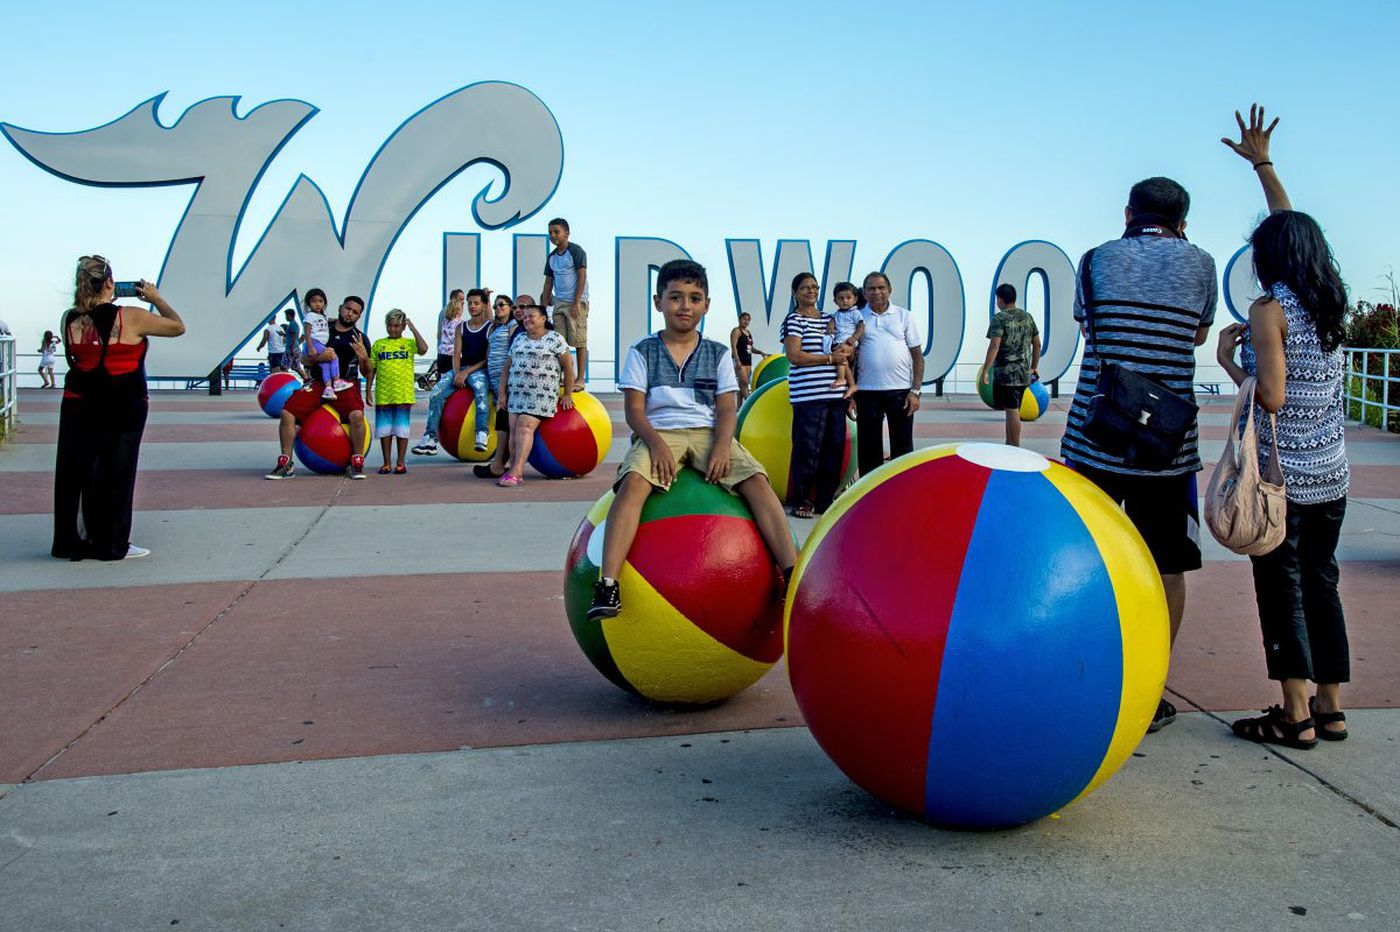 The Wildwoods add ax-throwing, food festivals to their summer appeal